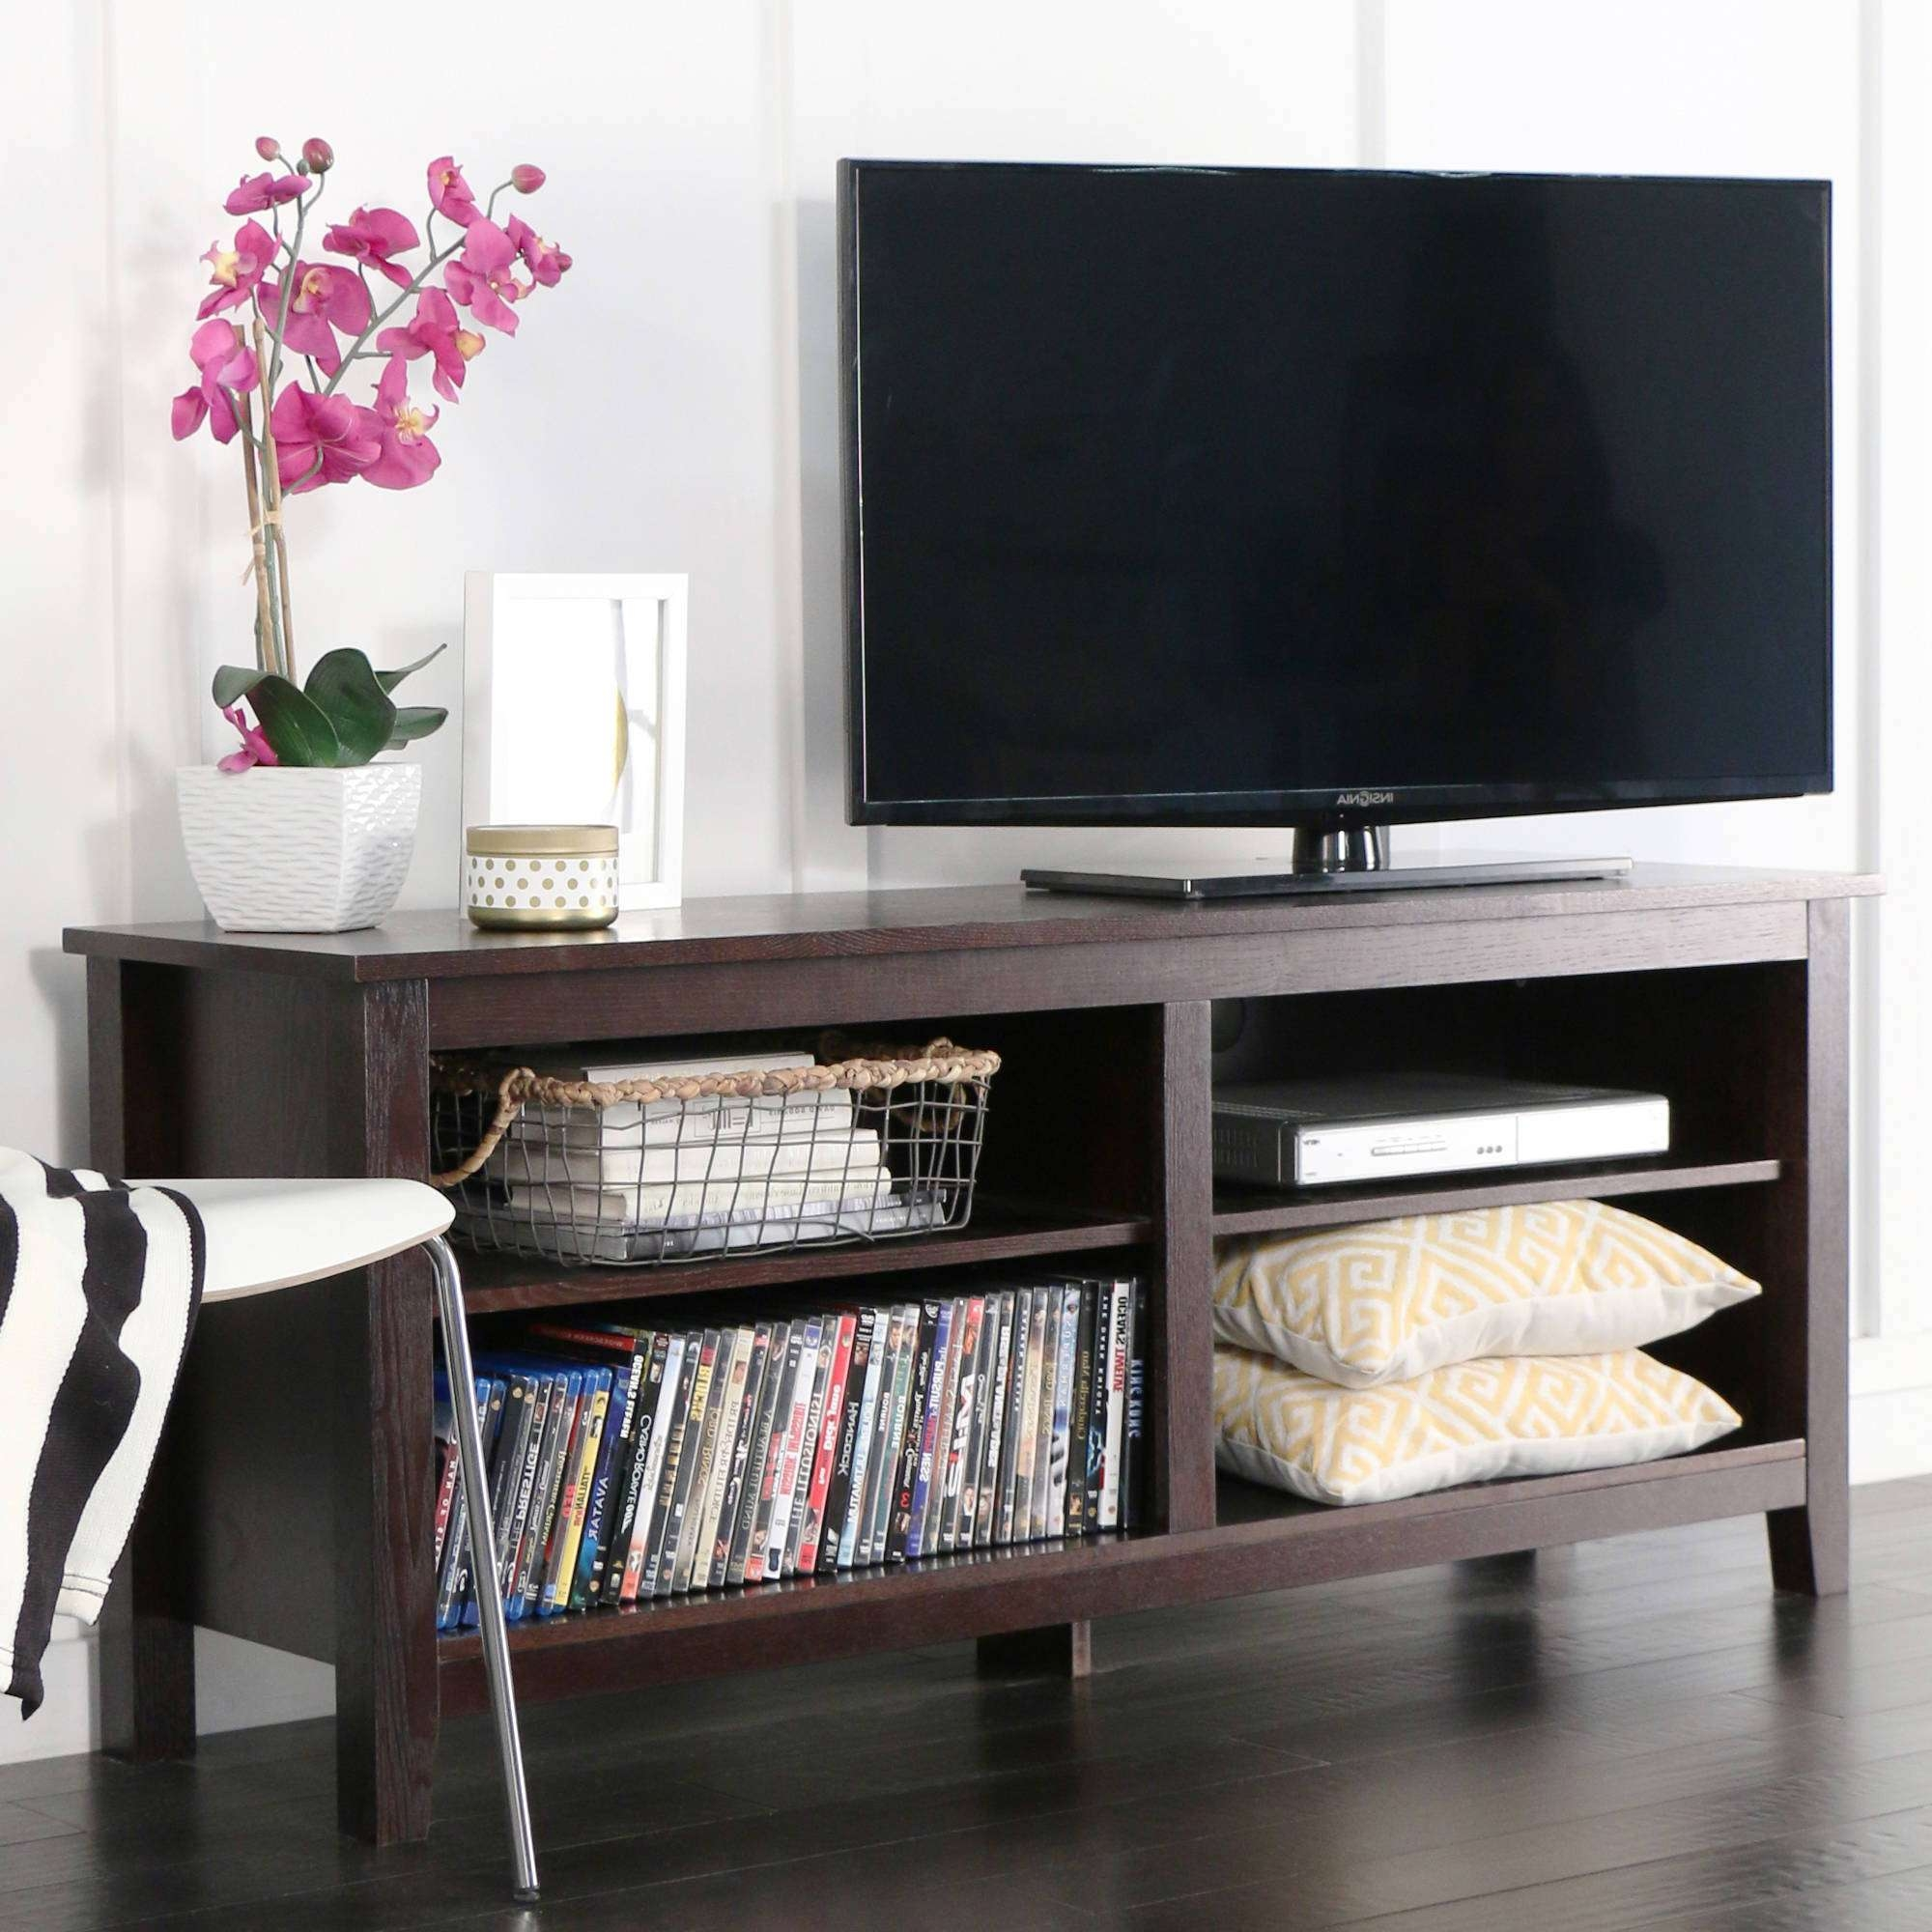 Tv : Diy Tv Stand Amazing Upright Tv Stands Turn An Old Dresser In Upright Tv Stands (View 8 of 15)